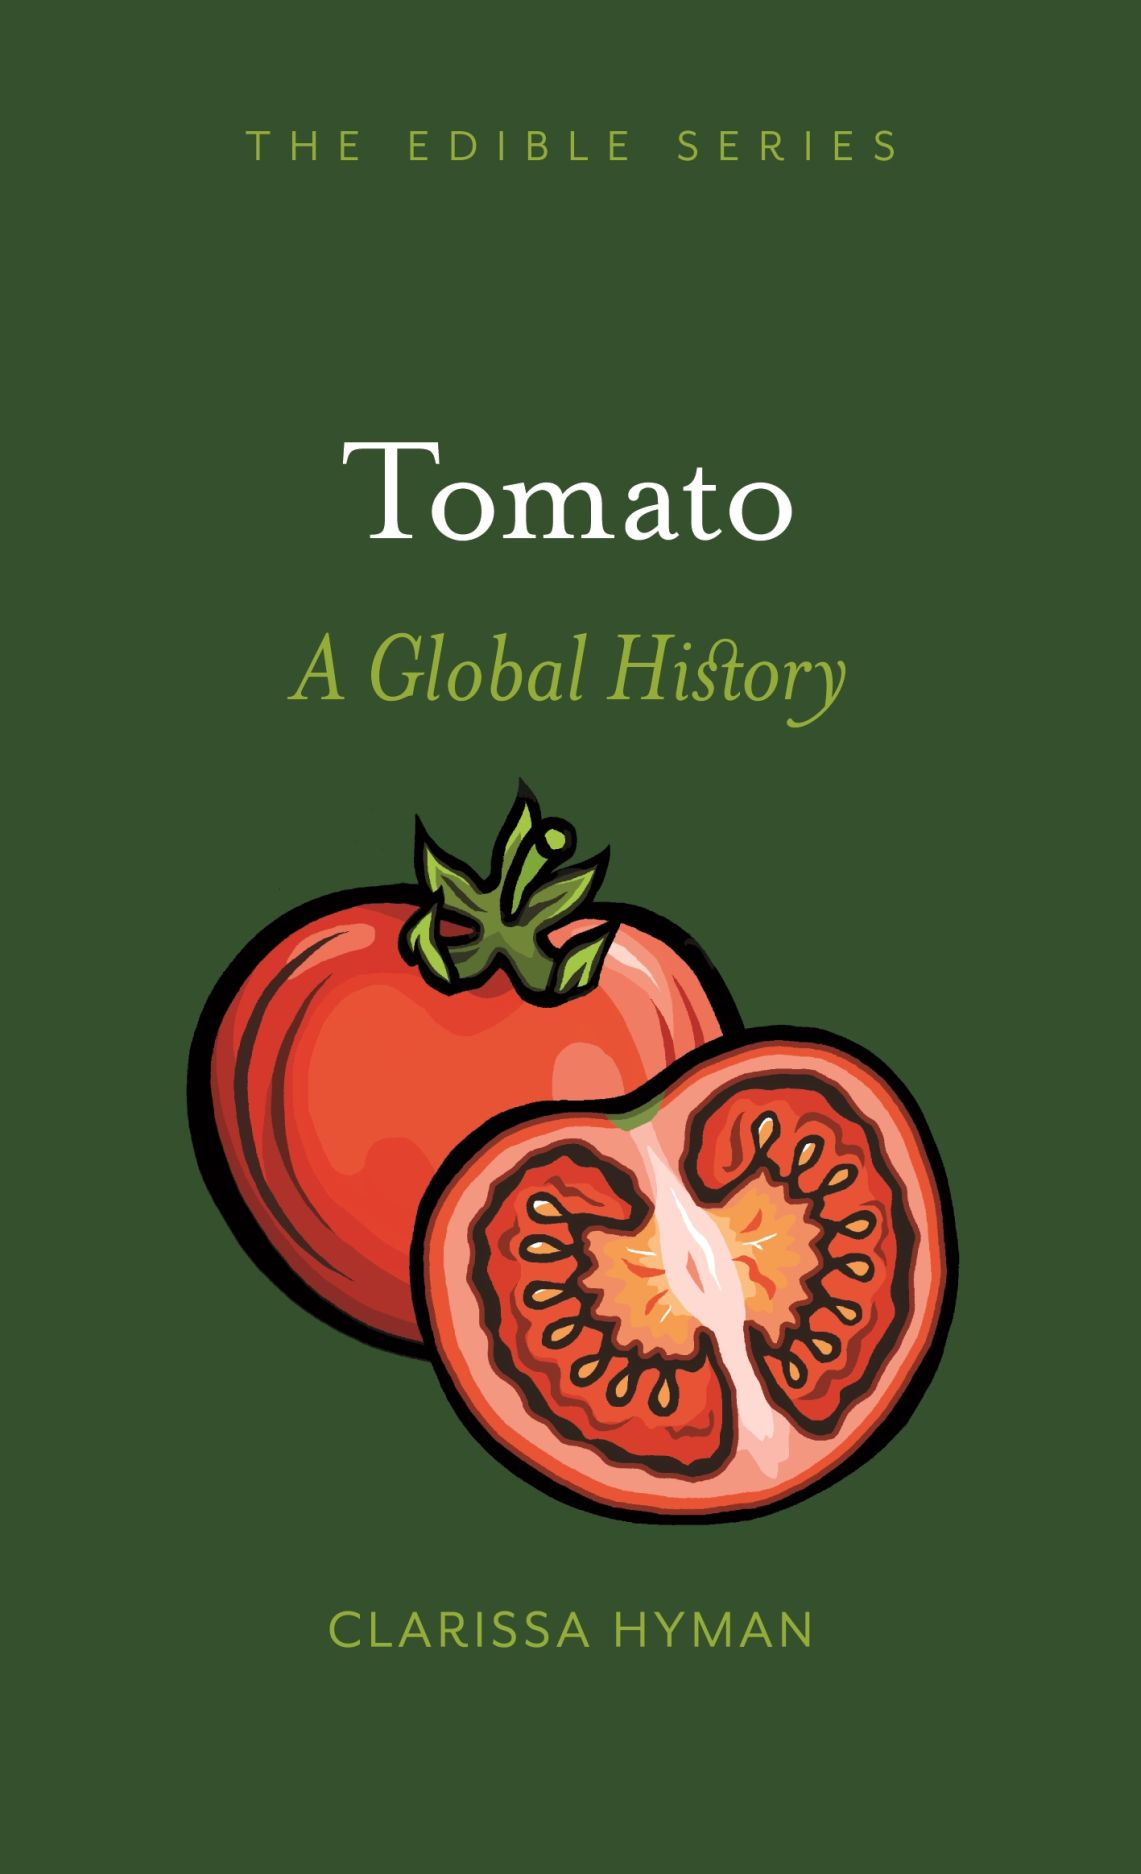 Tomato: A Global History